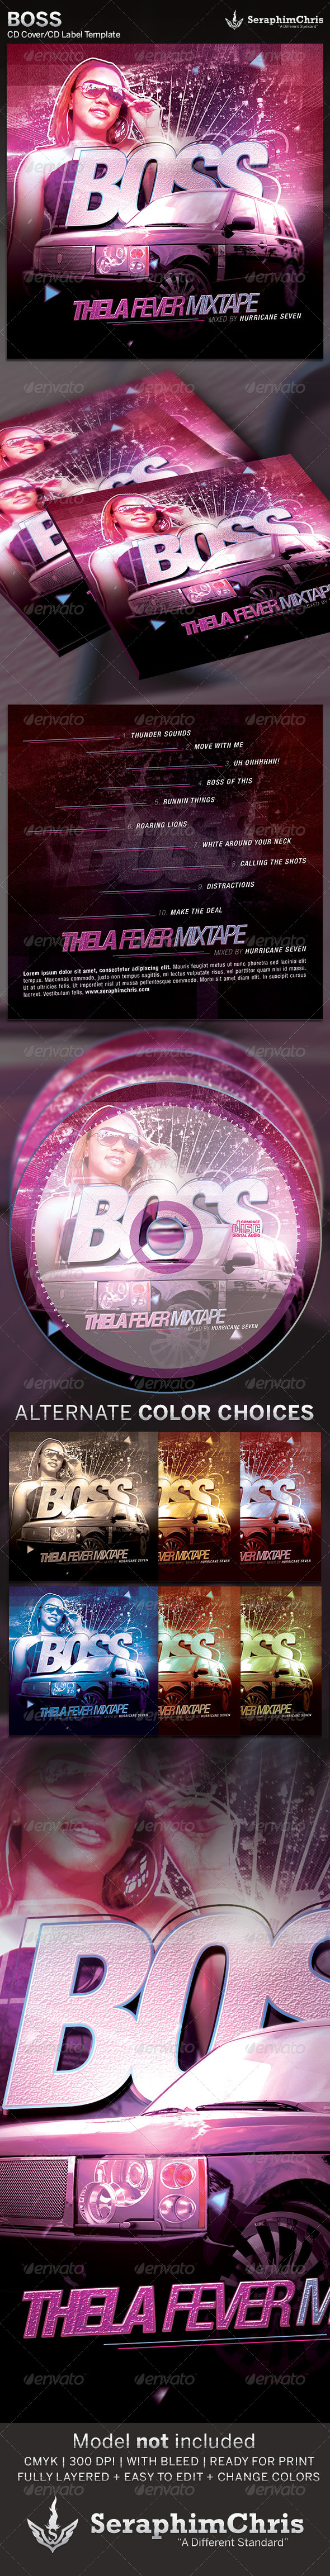 GraphicRiver Boss CD Cover Artwork Template 4237288